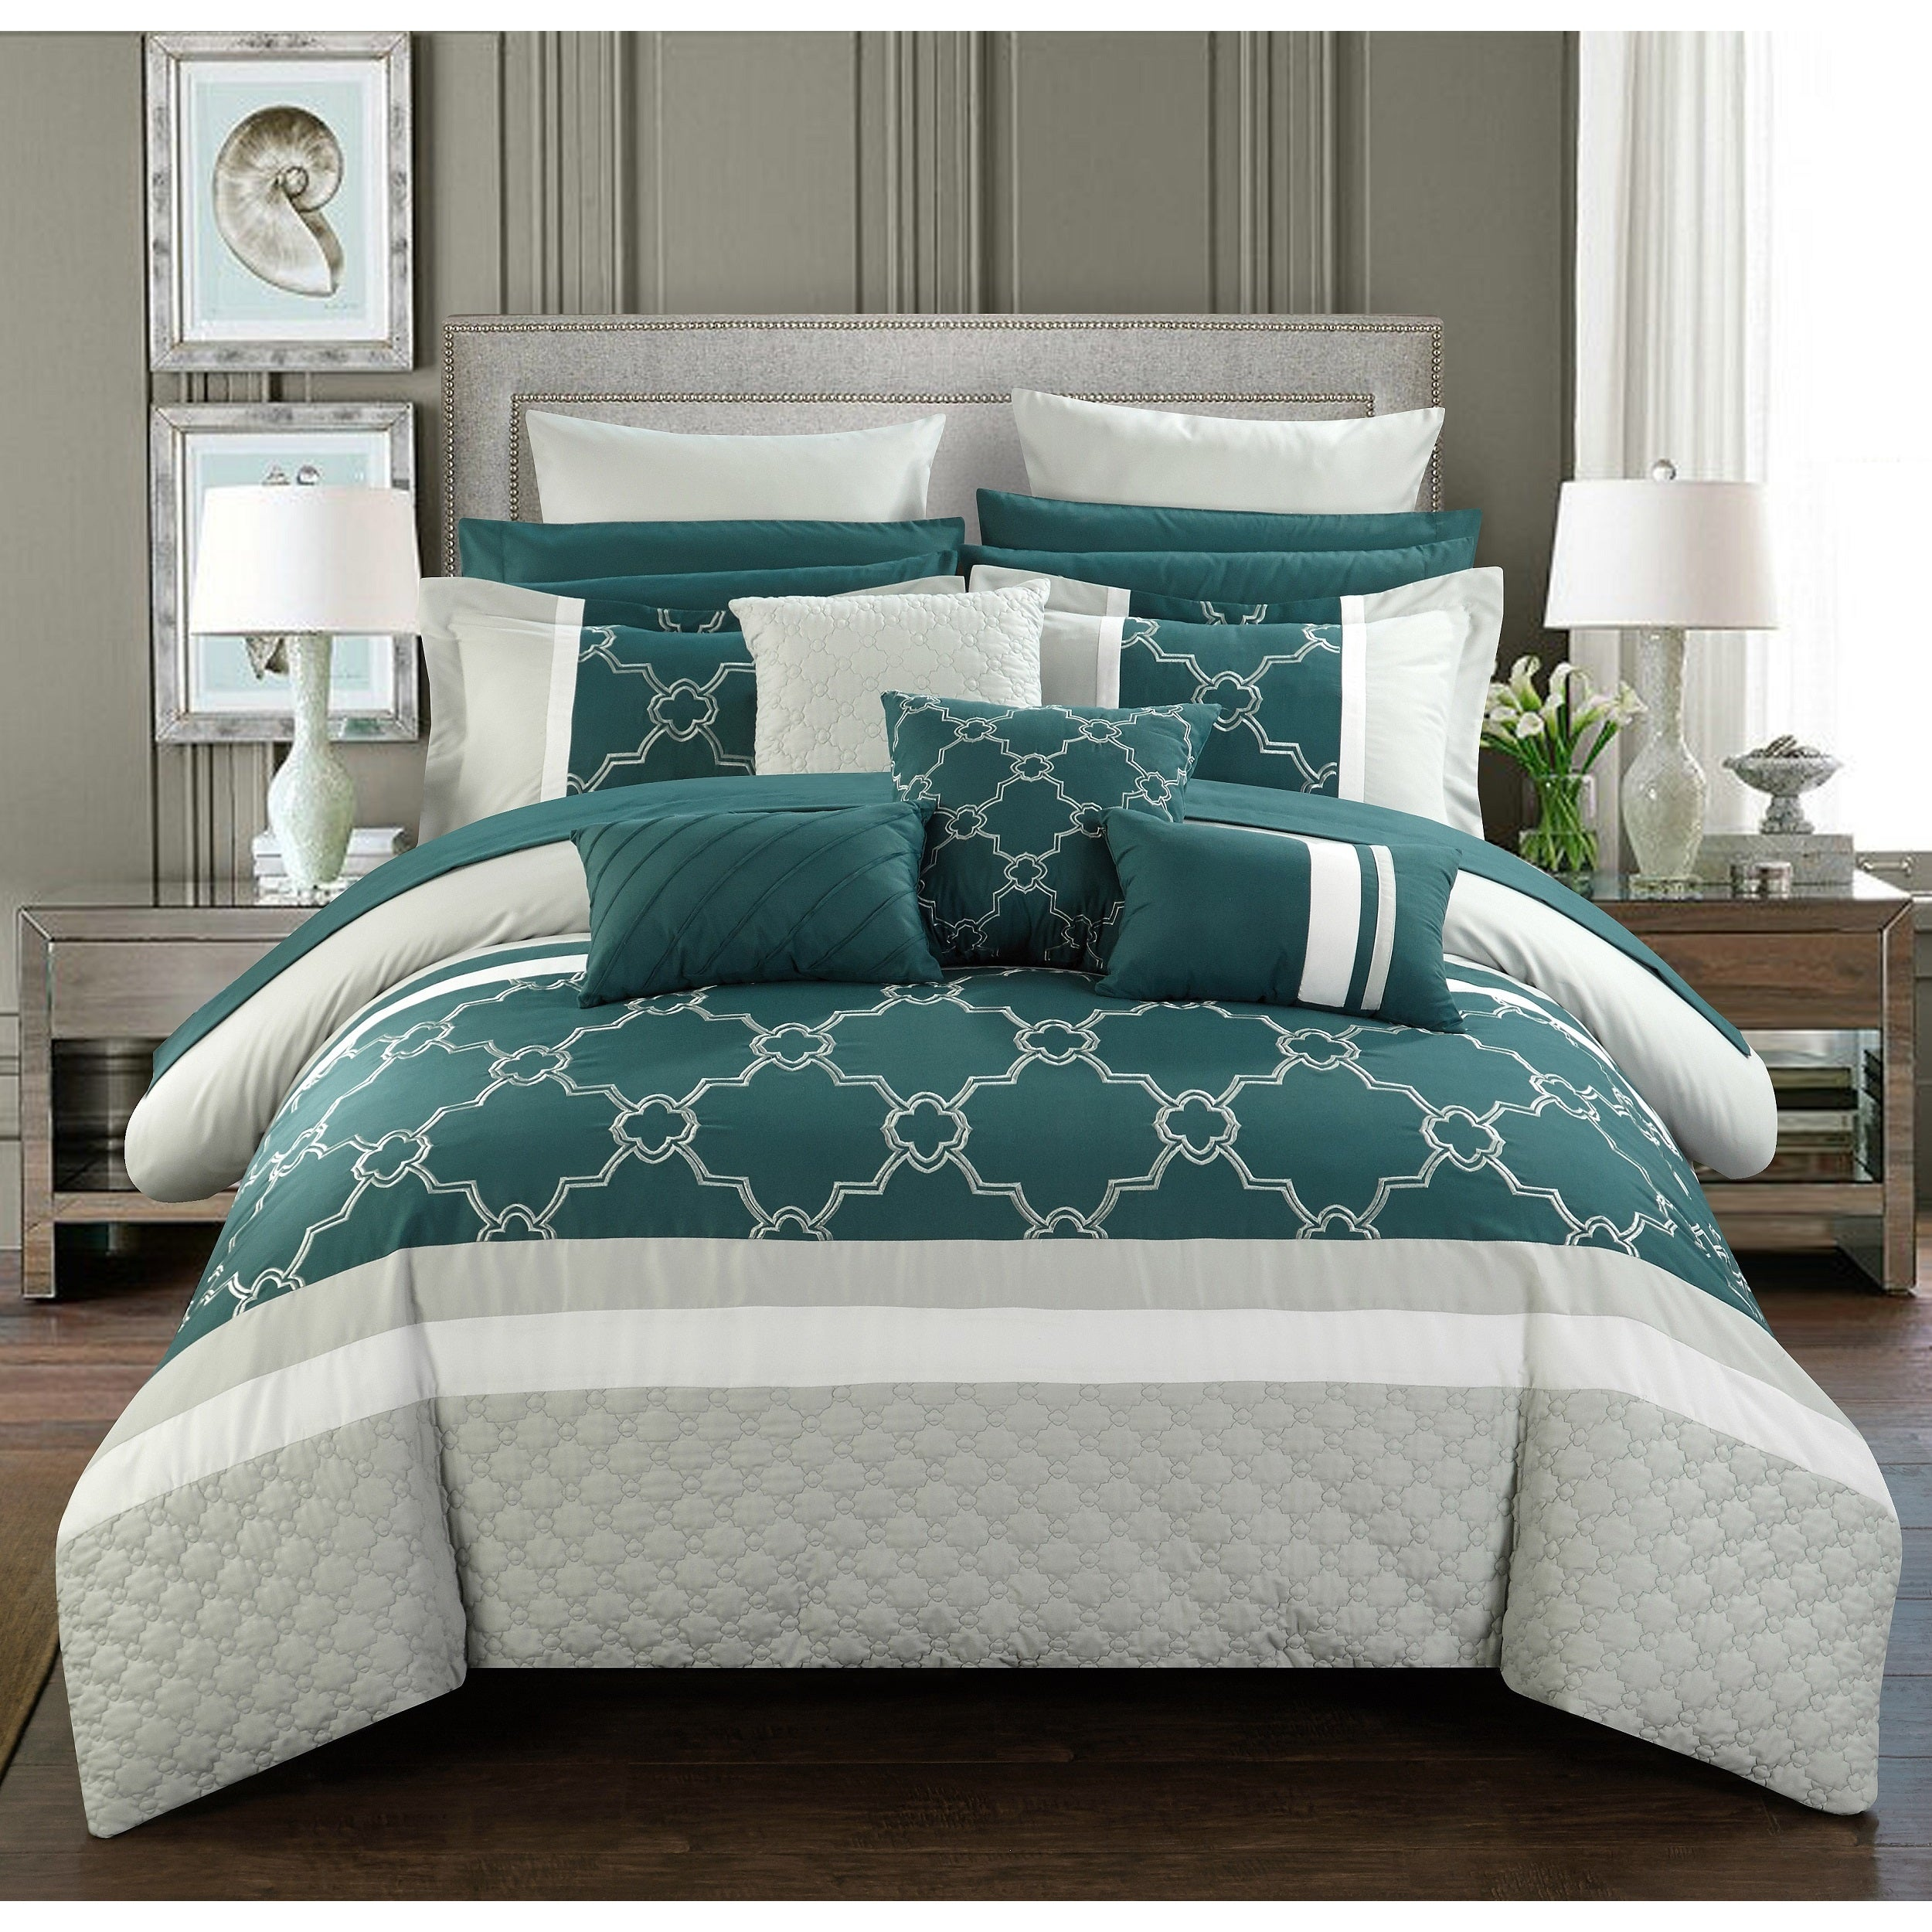 Chic Home 16 Piece Casper King Bed In A Bag Comforter Set On Free Shipping Today 14506342